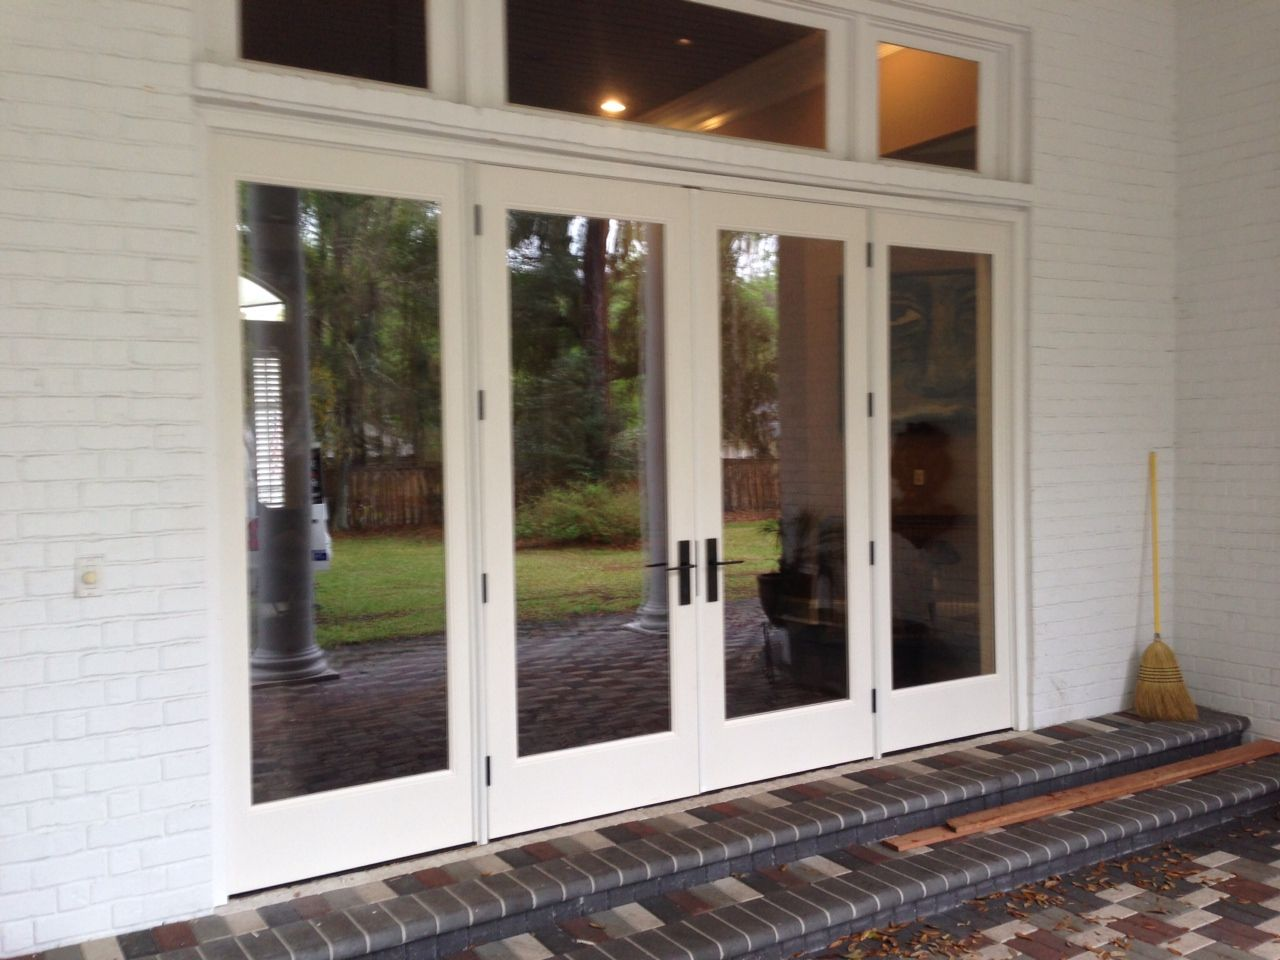 French Doors Gainesville Jacksonville Ocala The Villages Lake City Fl French Doors Patio Exterior Doors With Glass Sliding French Doors Patio